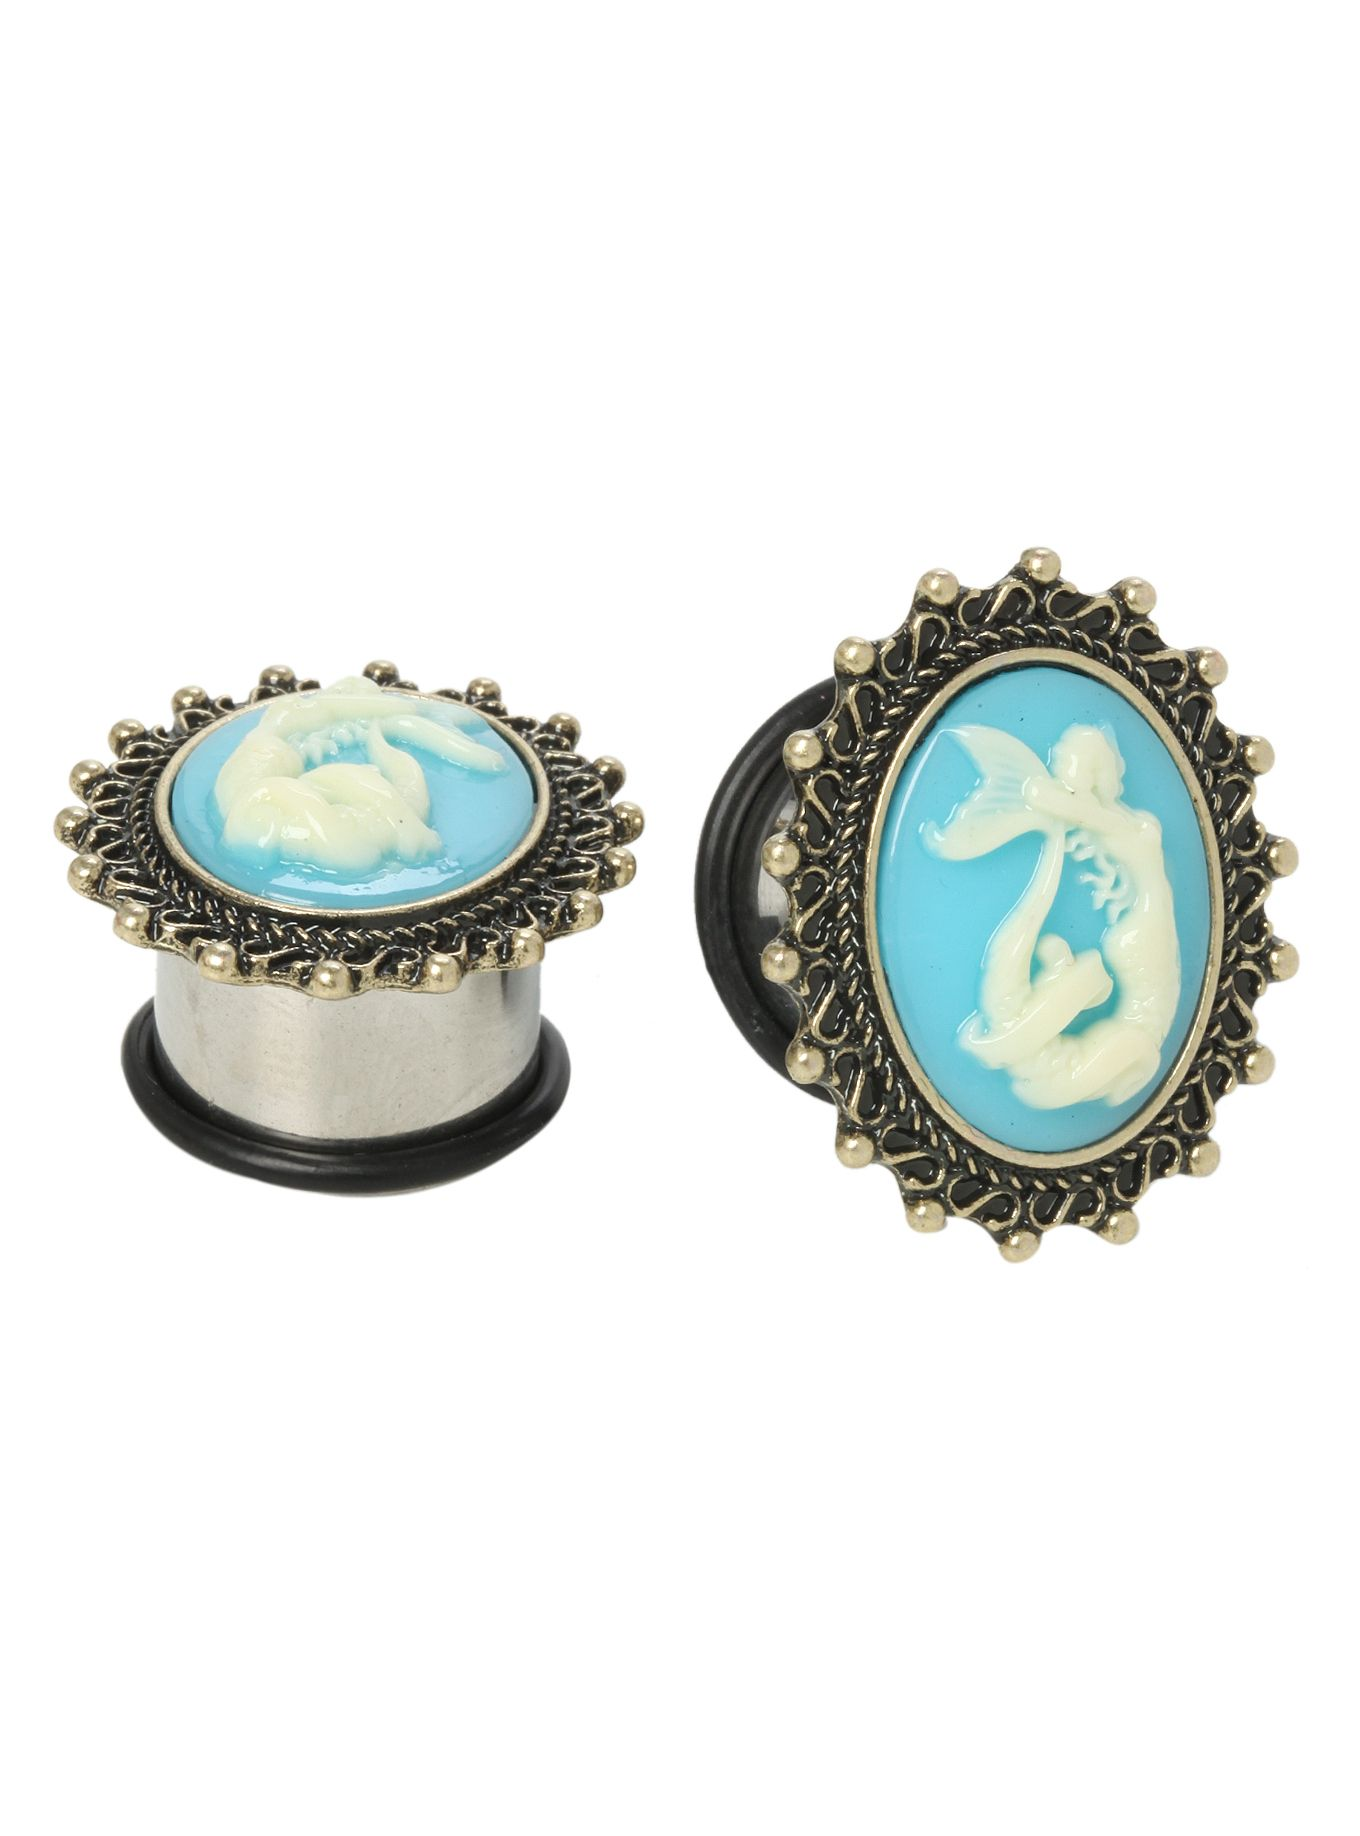 A pair of 316L surgical steel plugs with mermaid cameo centers and a saddle shape.